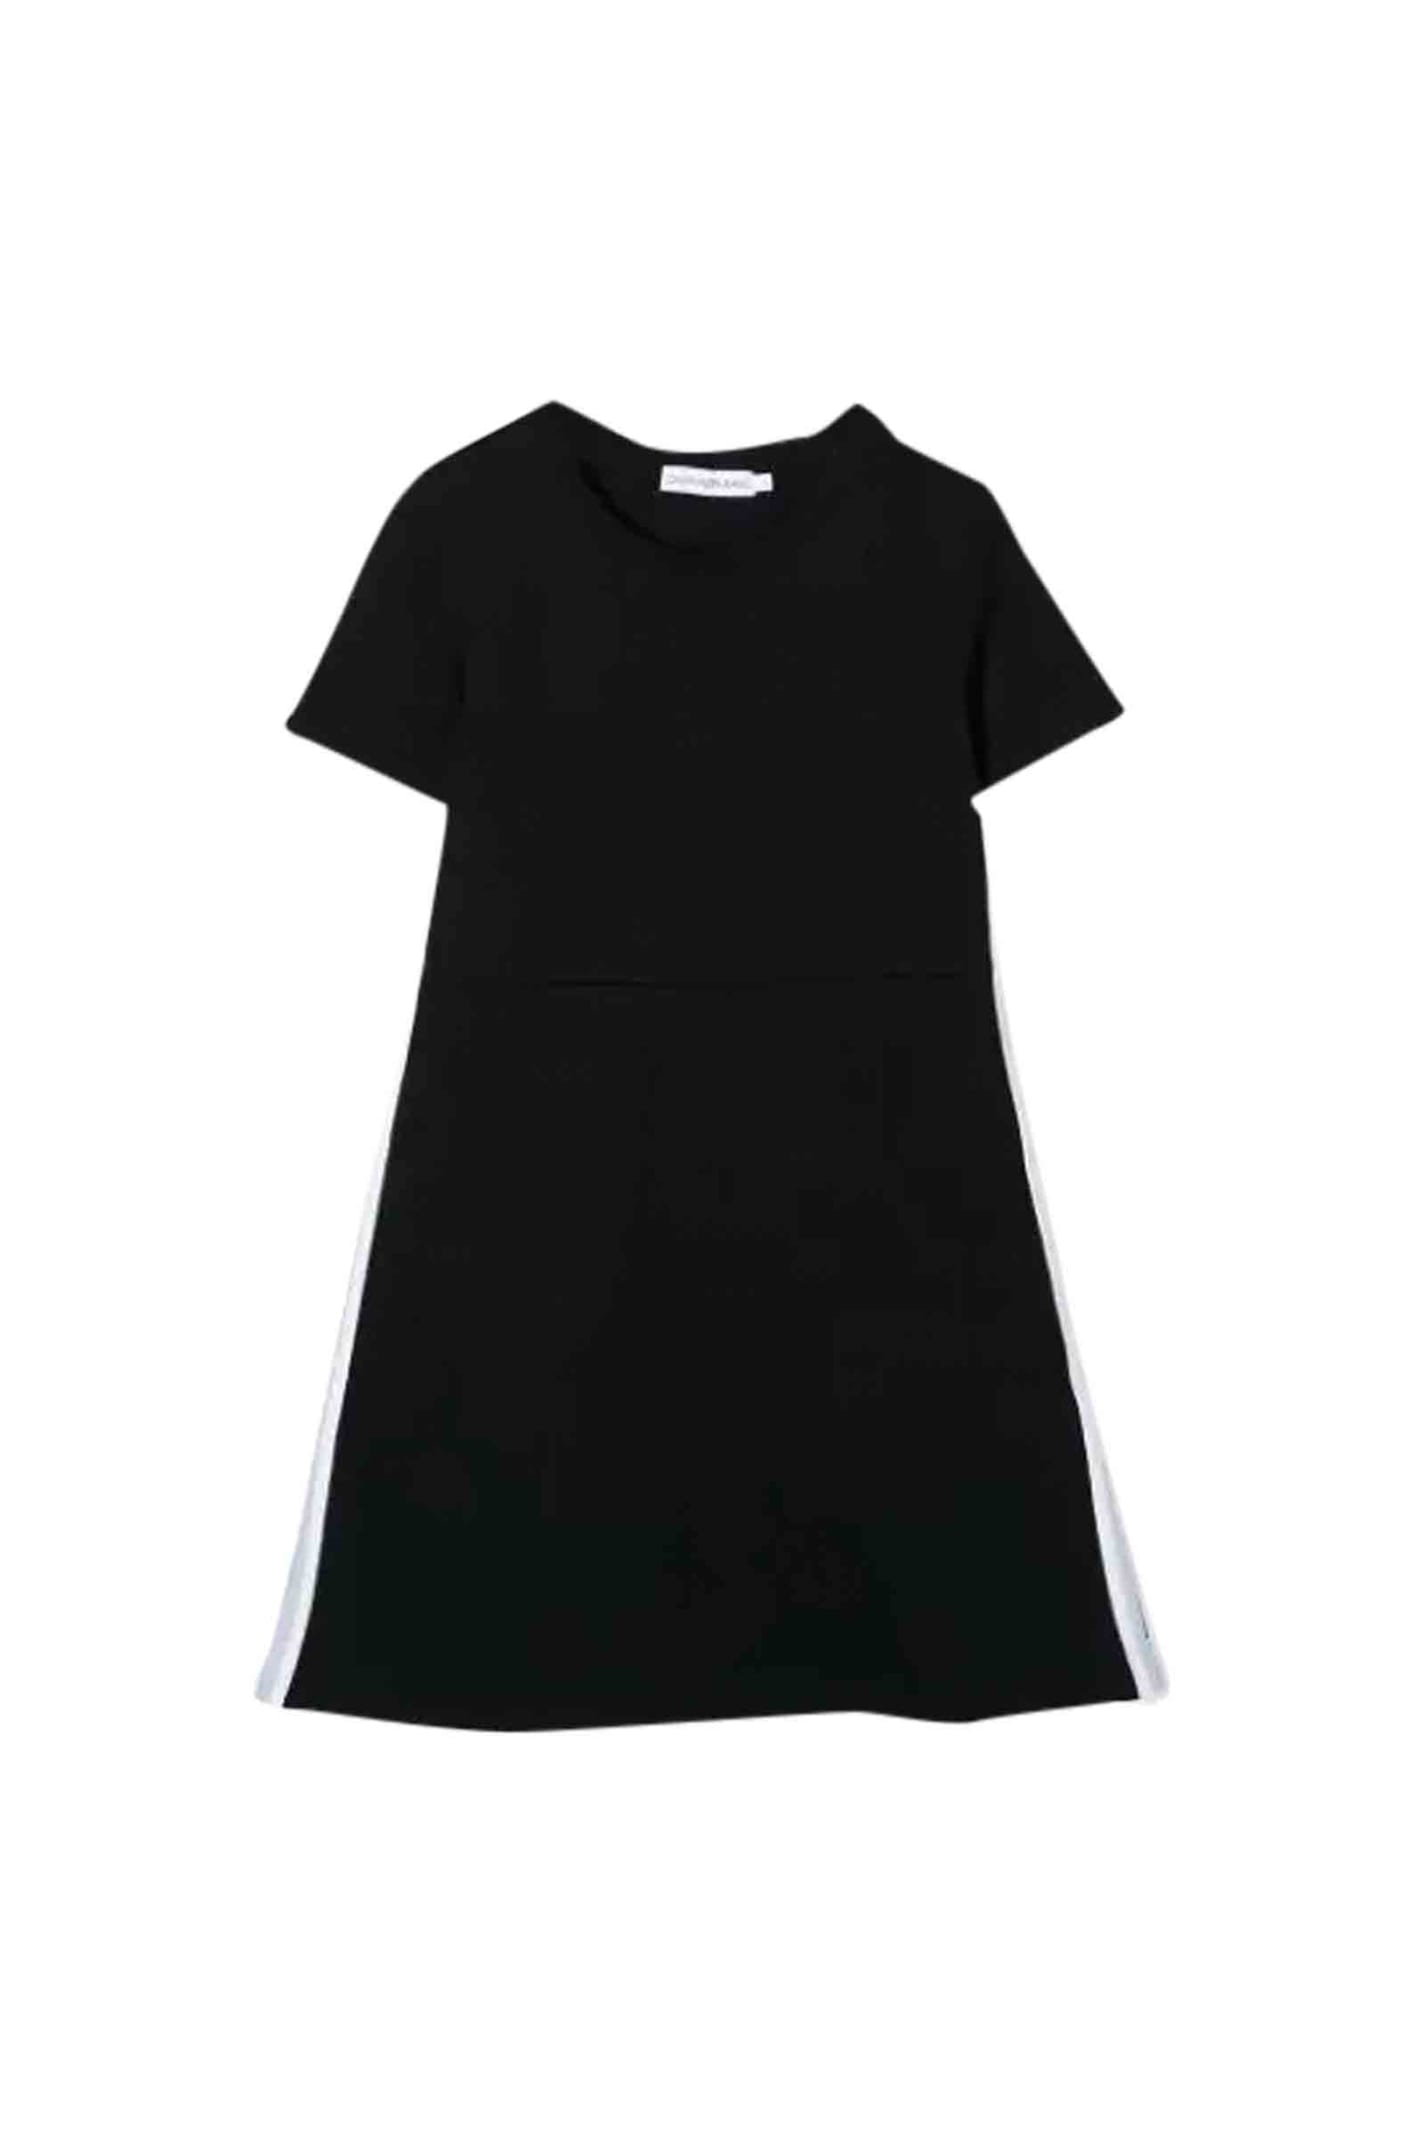 Calvin Klein Short Sleeve Dress